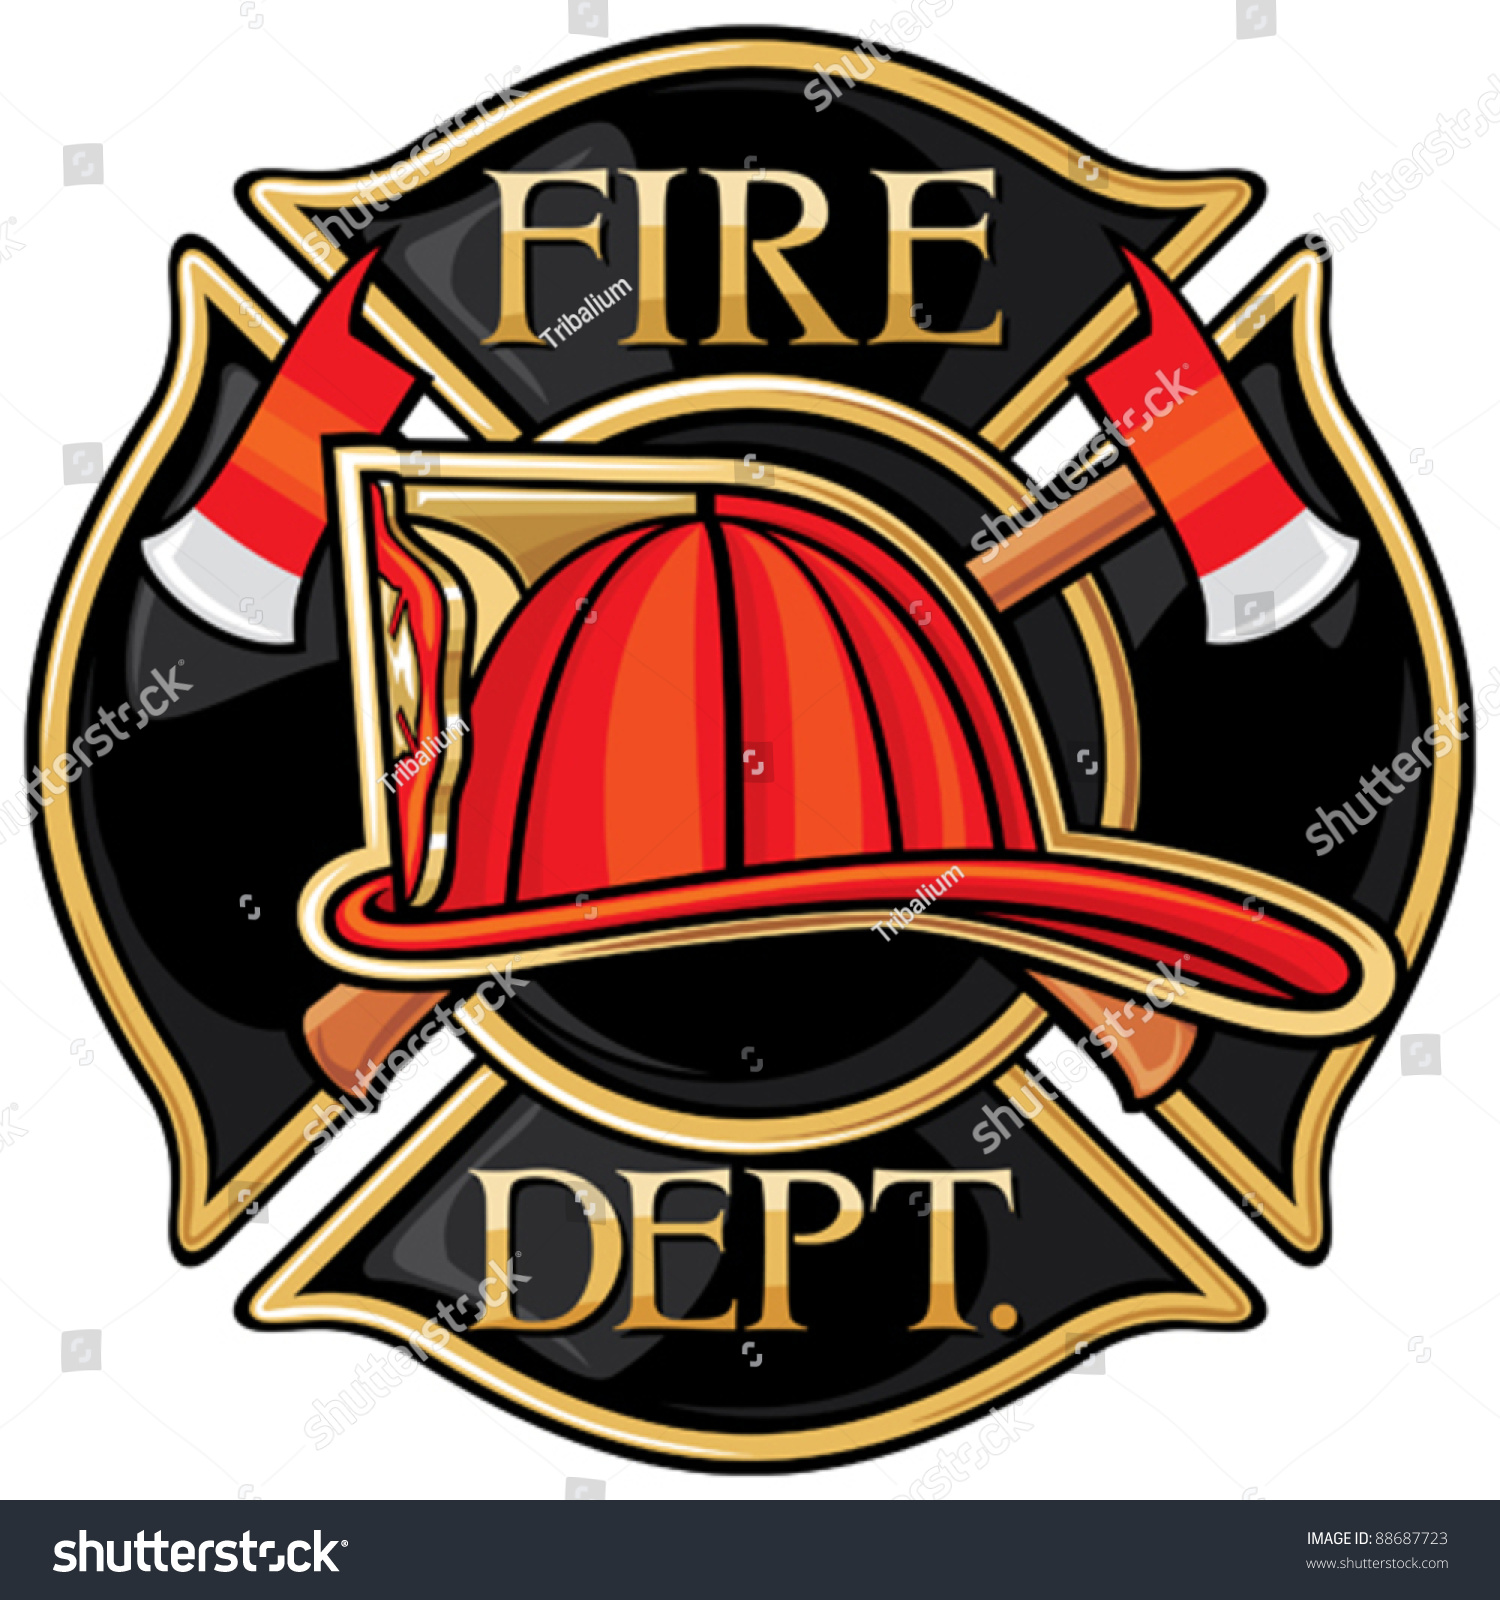 Fire Maltese Cross Clip Art moreover 18109 further Best Firefighter Quotes additionally Stock Vector Fire Department Or Firefighters Maltese Cross Symbol as well Clipart NiBXjxpLT. on volunteer firefighter symbol